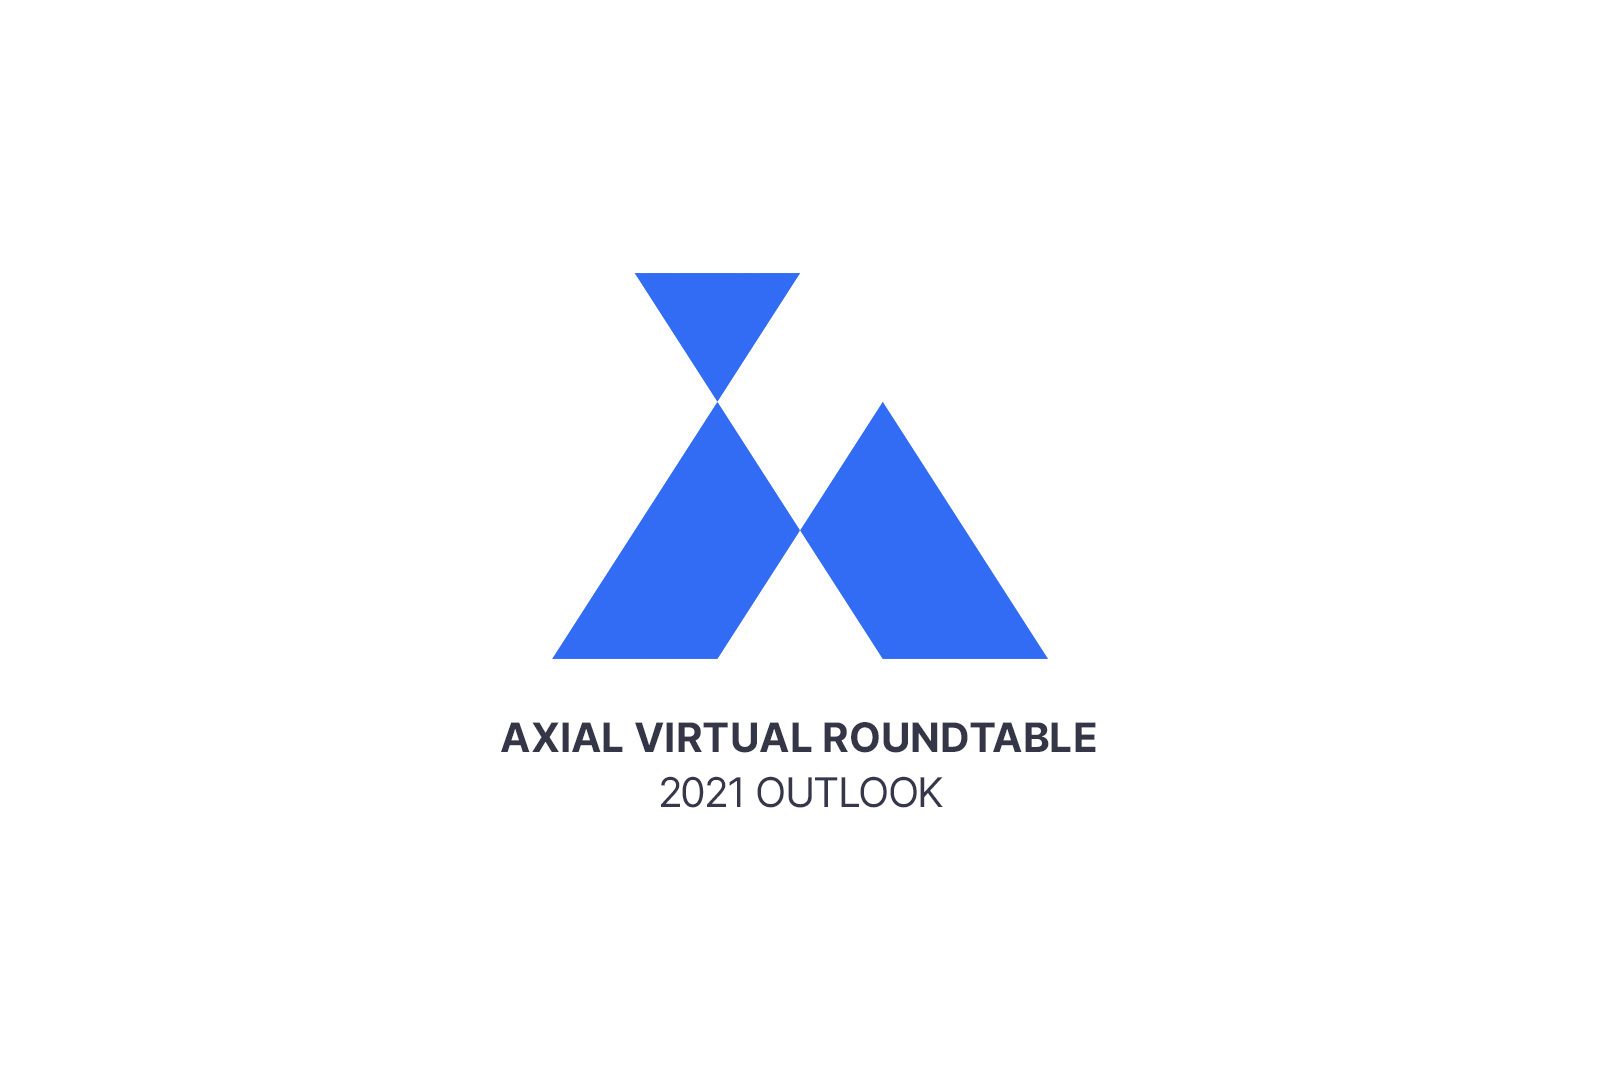 2021 M&A Outlook